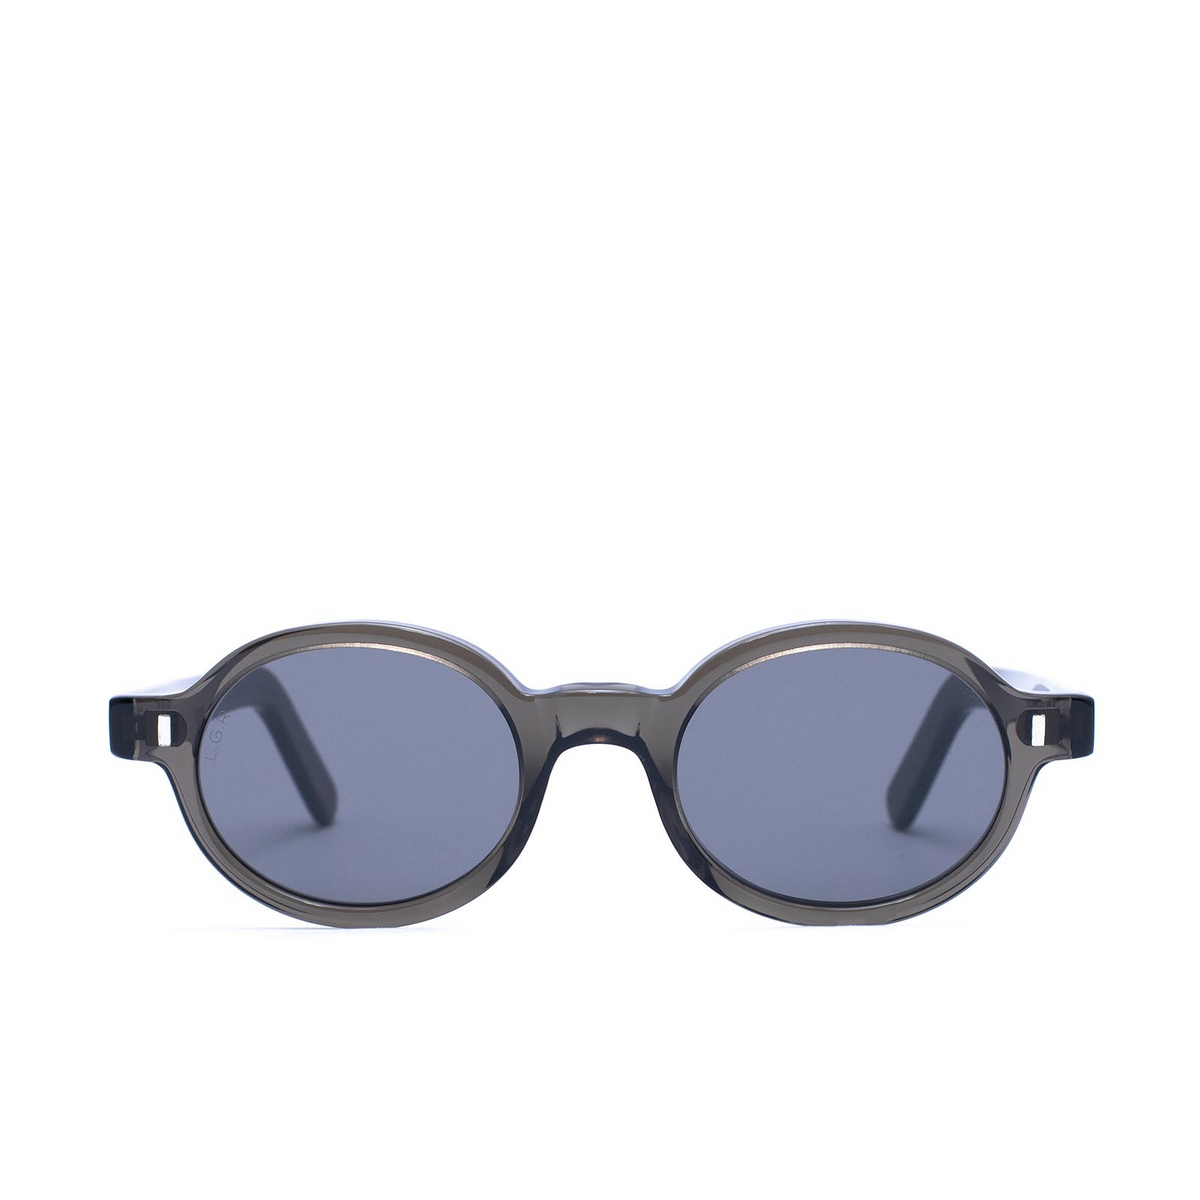 L.G.R® Oval Sunglasses: Teos Bold color Grey 70 - front view.